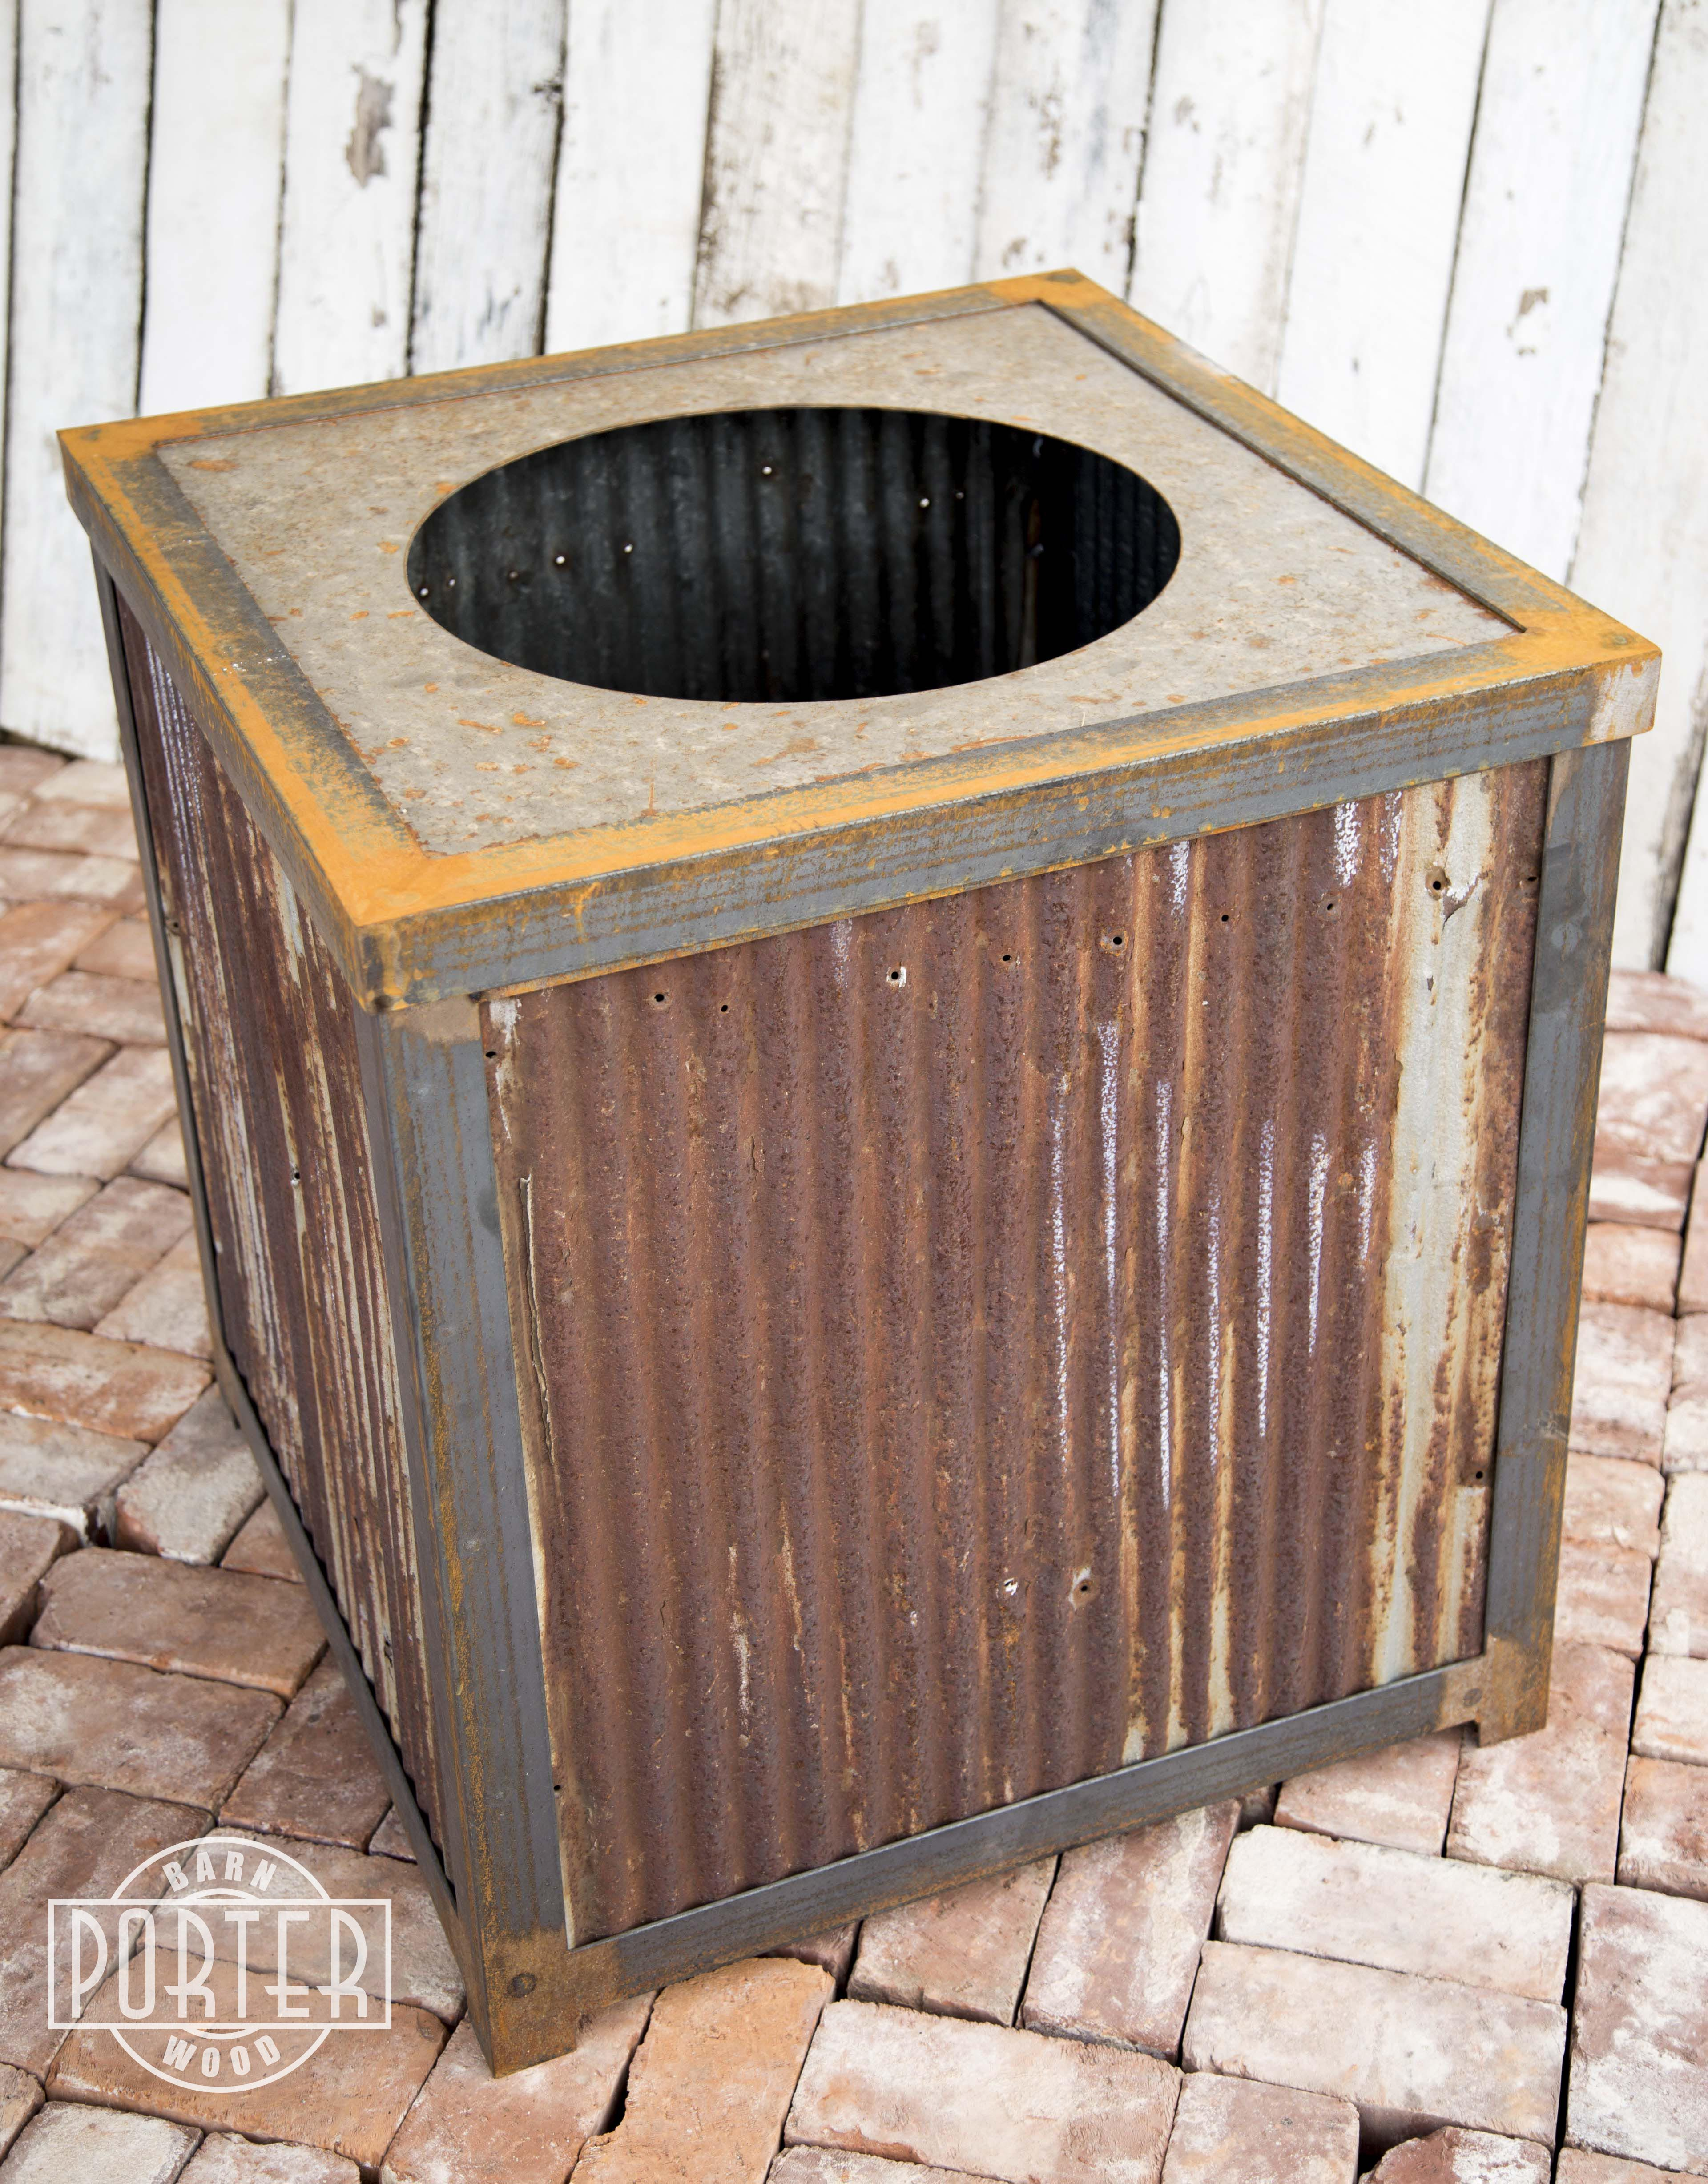 Modern Industrial Reclaimed Corrugated Metal Trash Can On